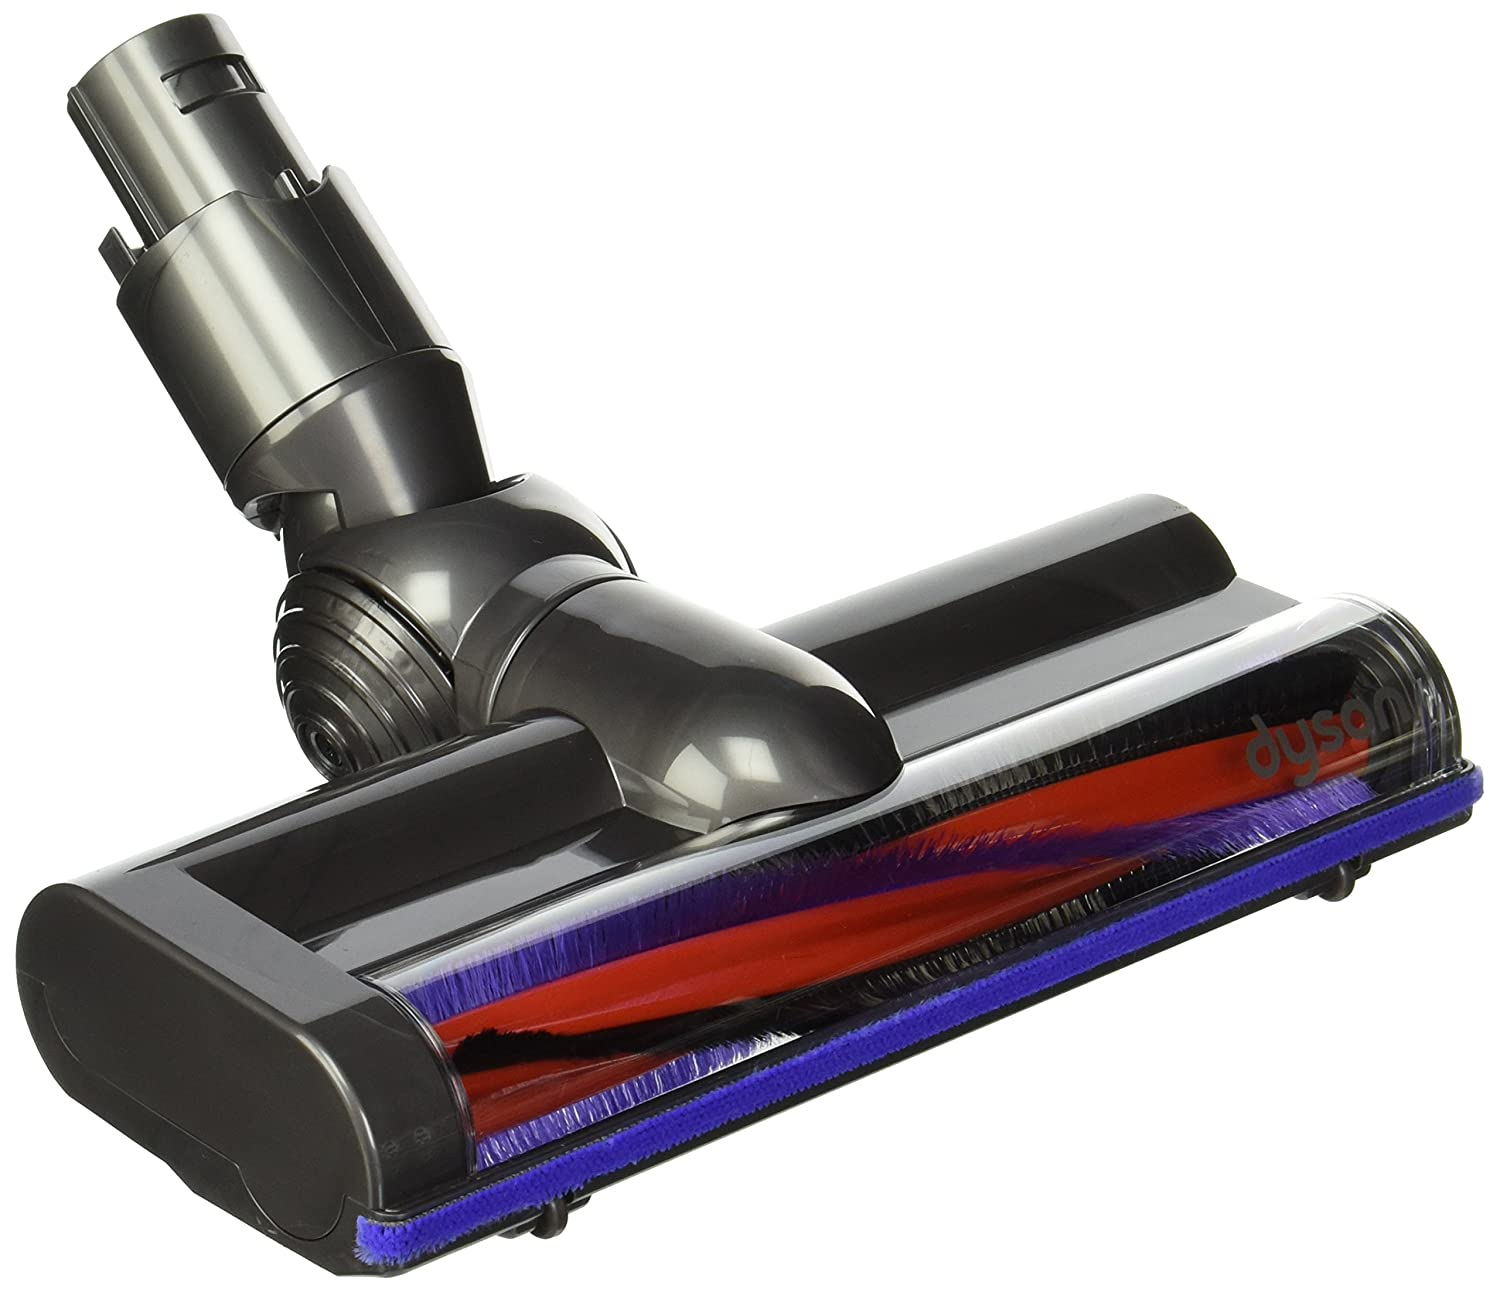 dyson dc59 animal digital slim cordless vacuum cleaner. Black Bedroom Furniture Sets. Home Design Ideas